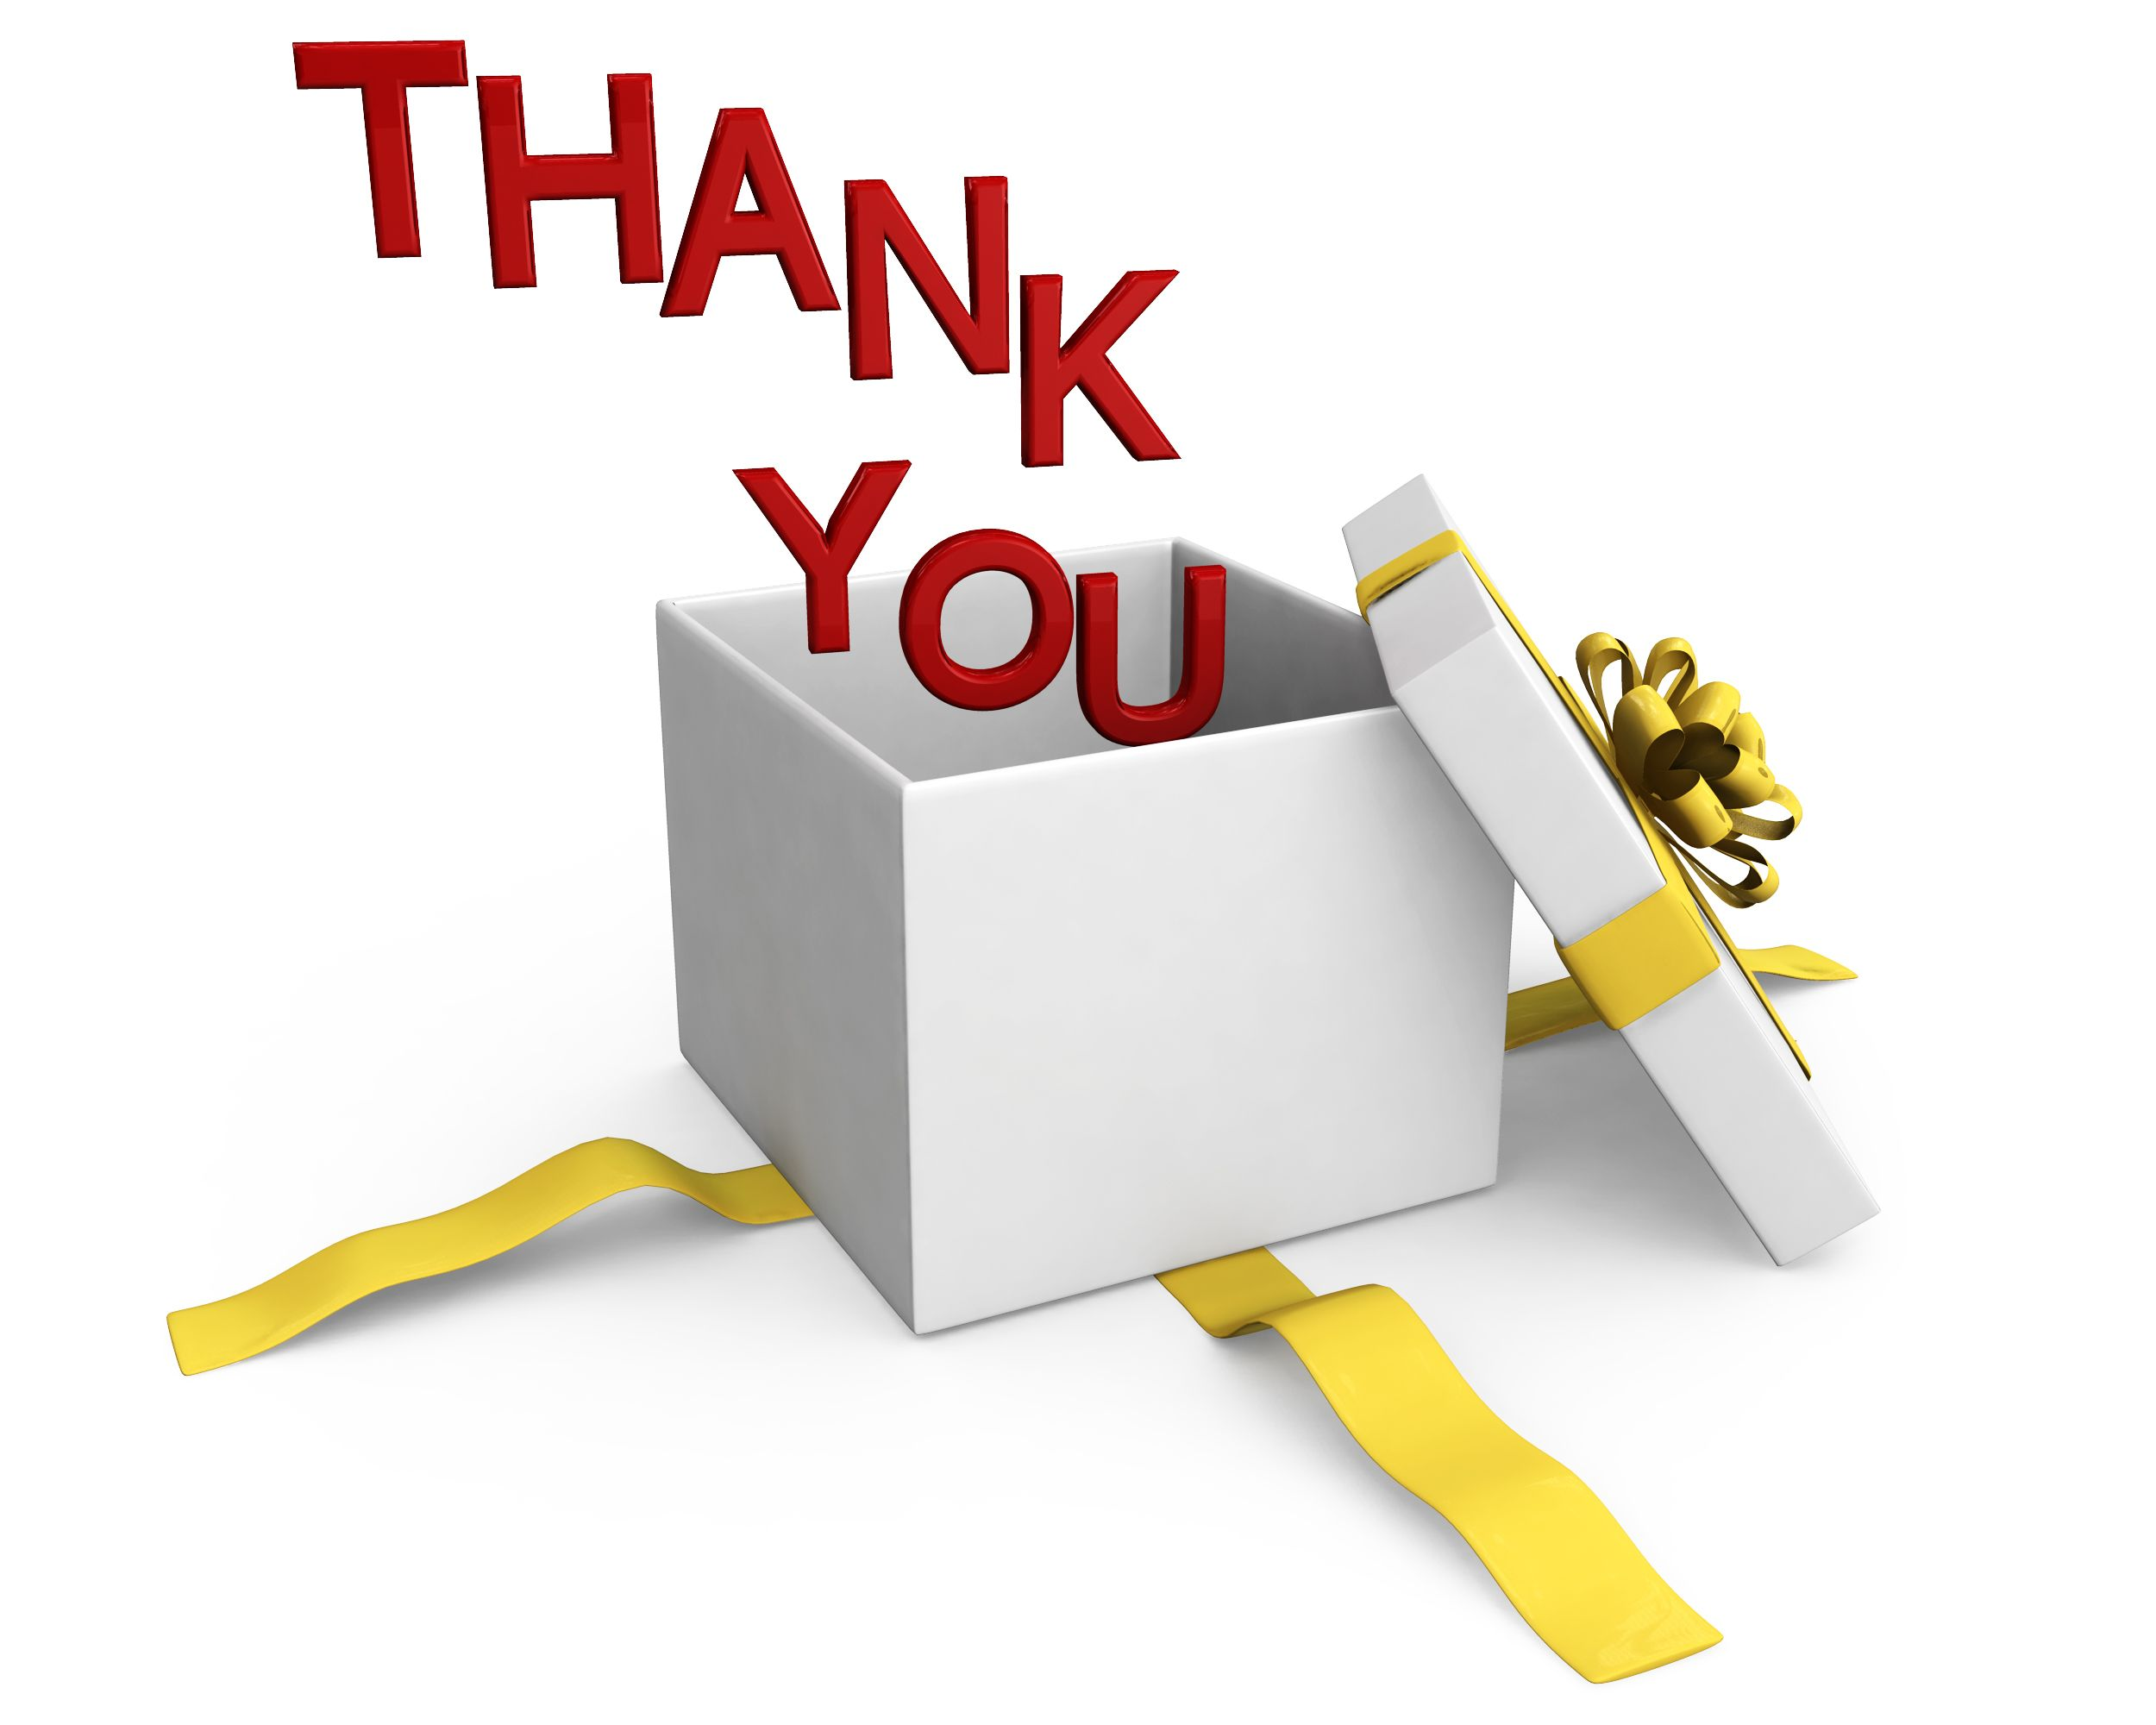 0914 thank you words coming out of gift box stock photo powerpoint 0914 thank you words coming out of gift box stock photo powerpoint presentation images templates ppt slide templates for presentation negle Image collections